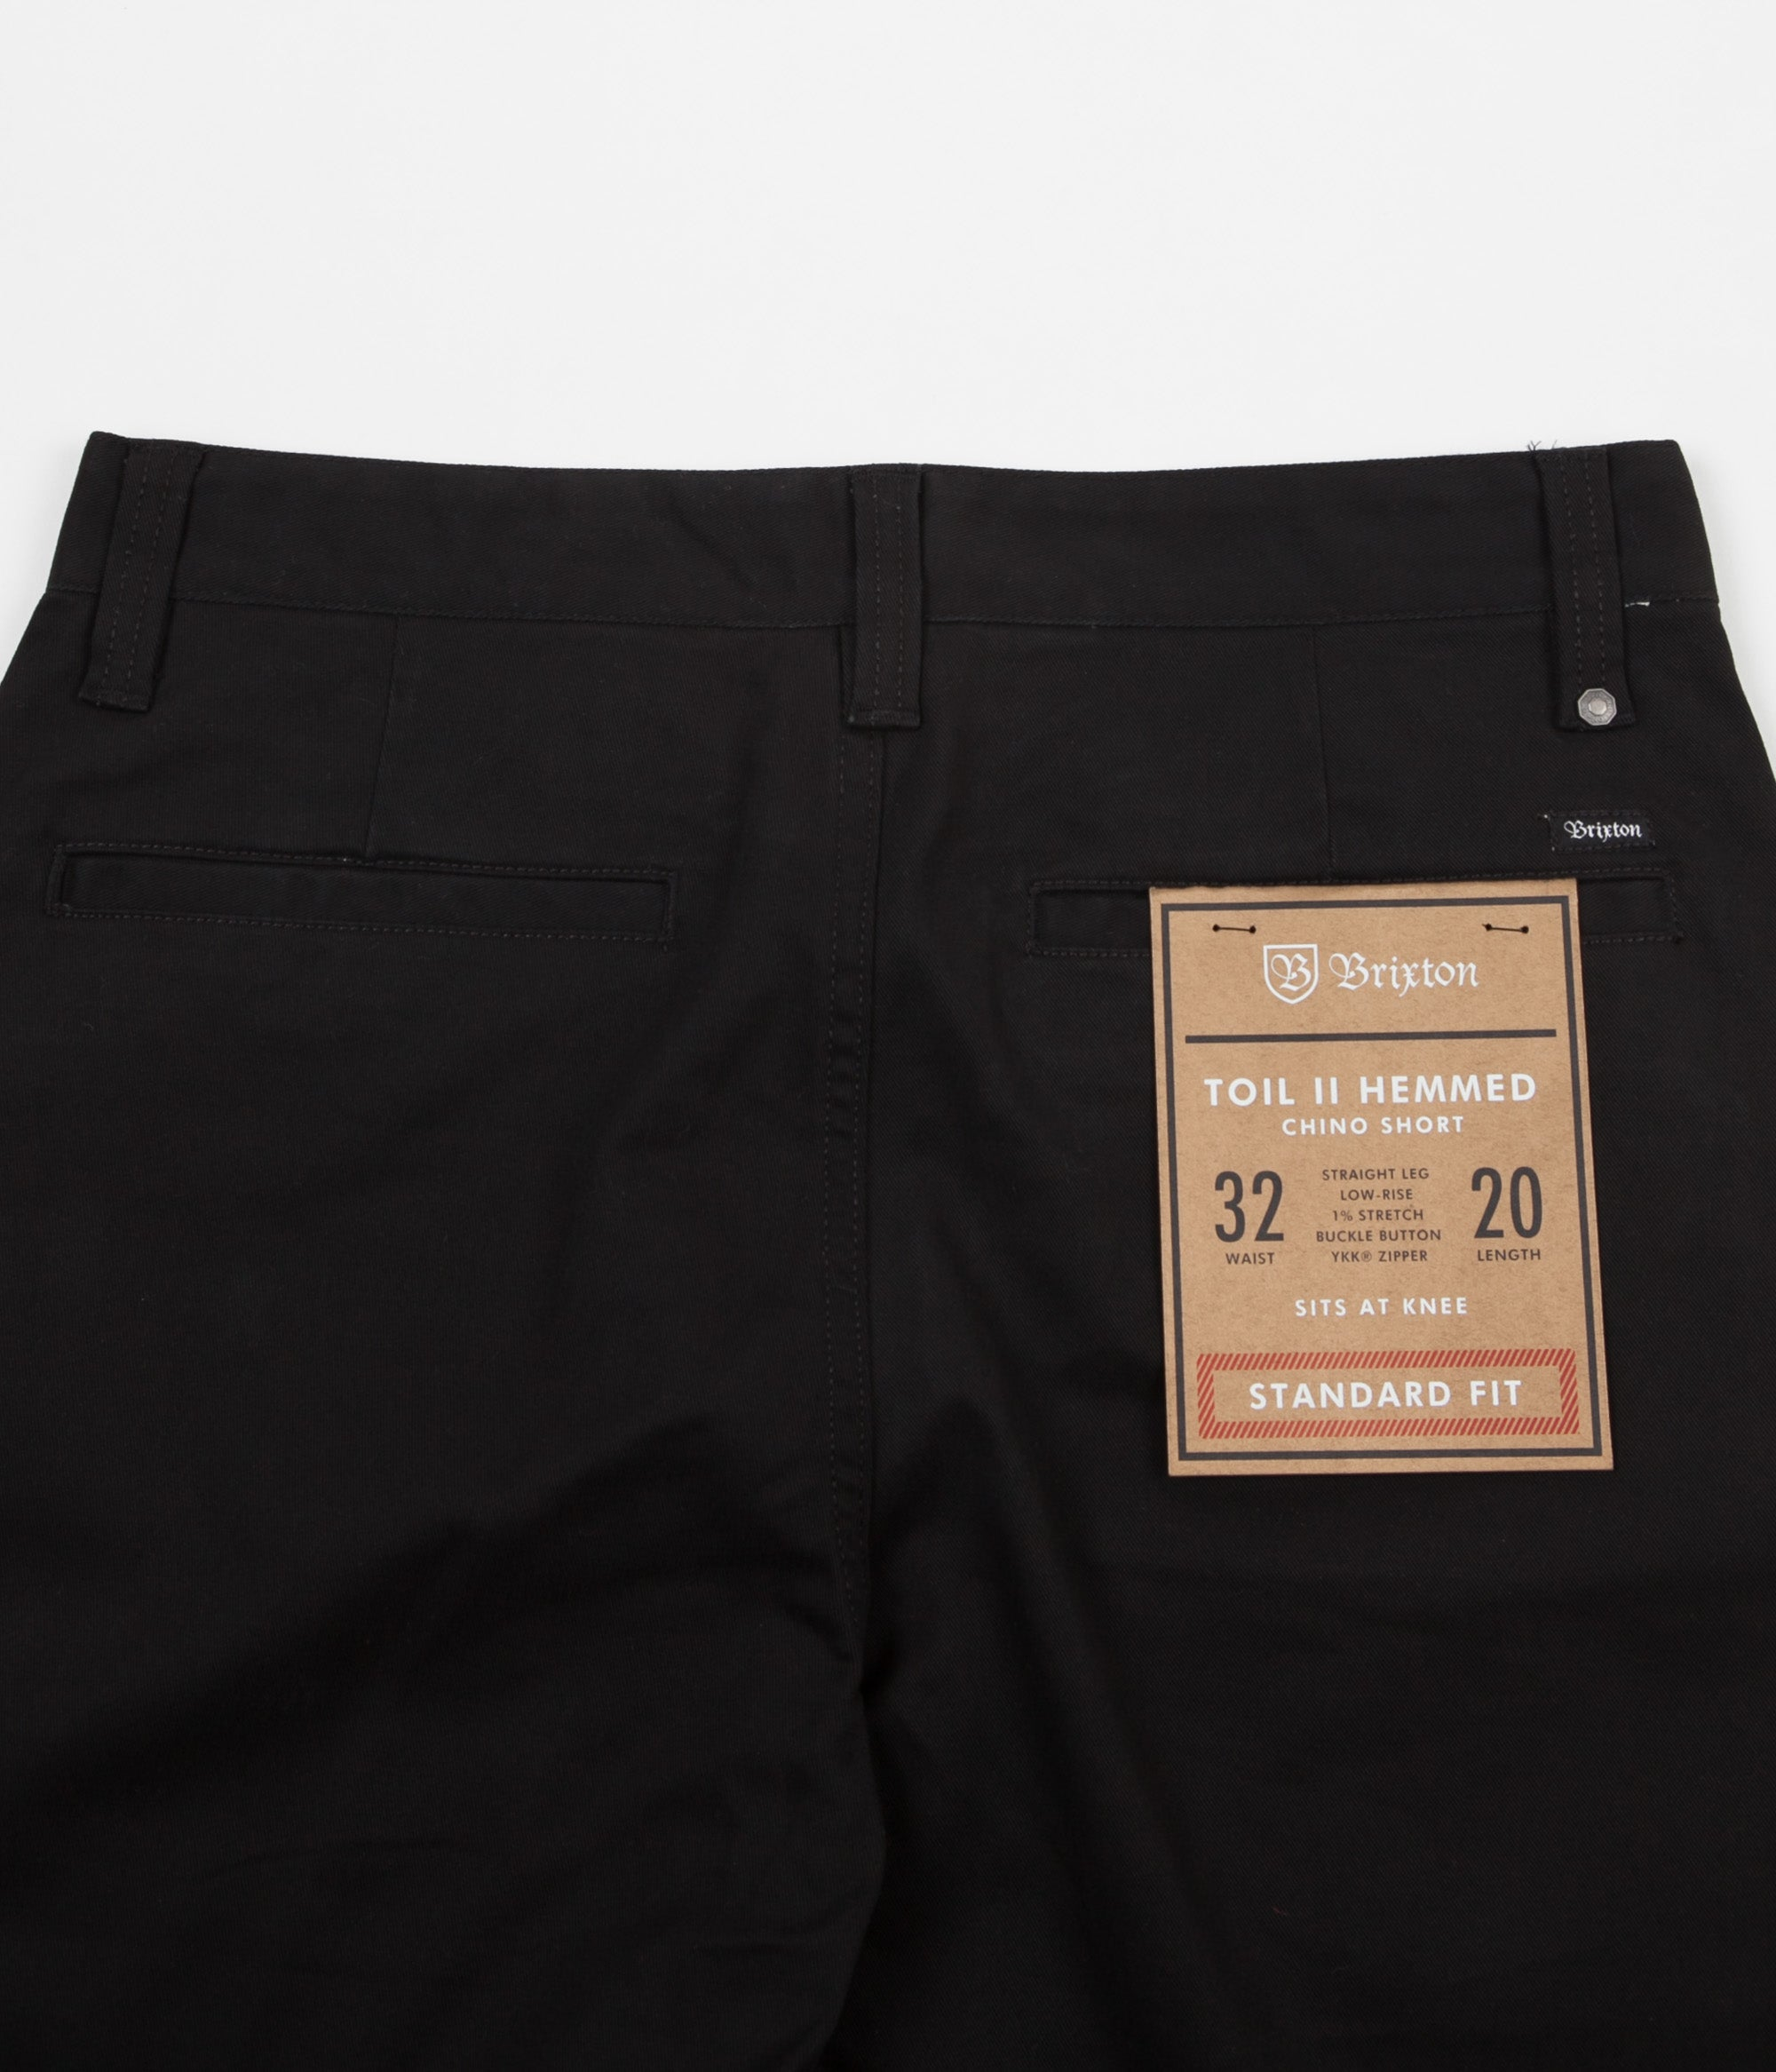 Brixton Toil II Hemmed Shorts - Black